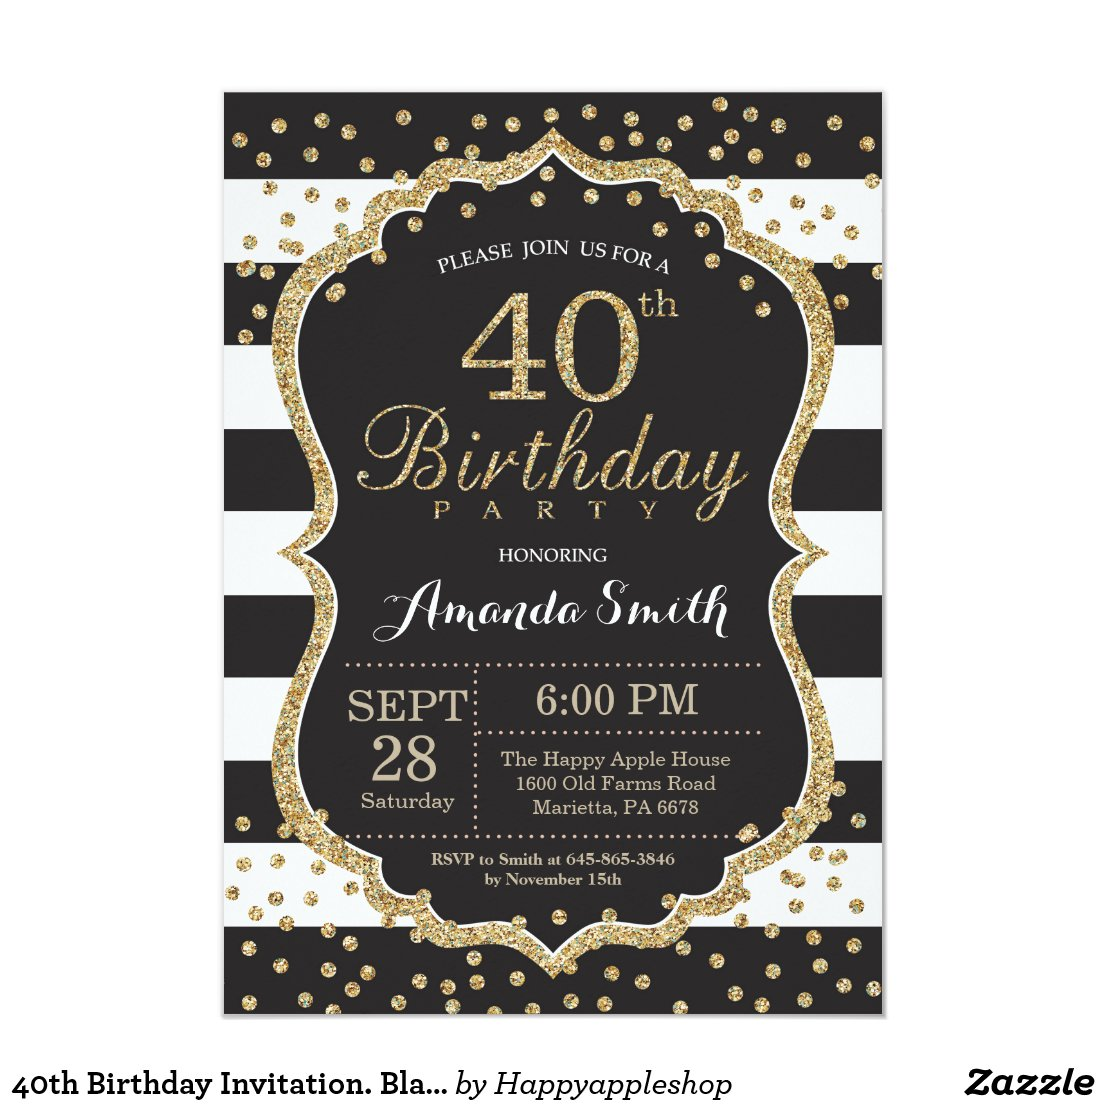 40th Birthday Invitation. Black and Gold Glitter